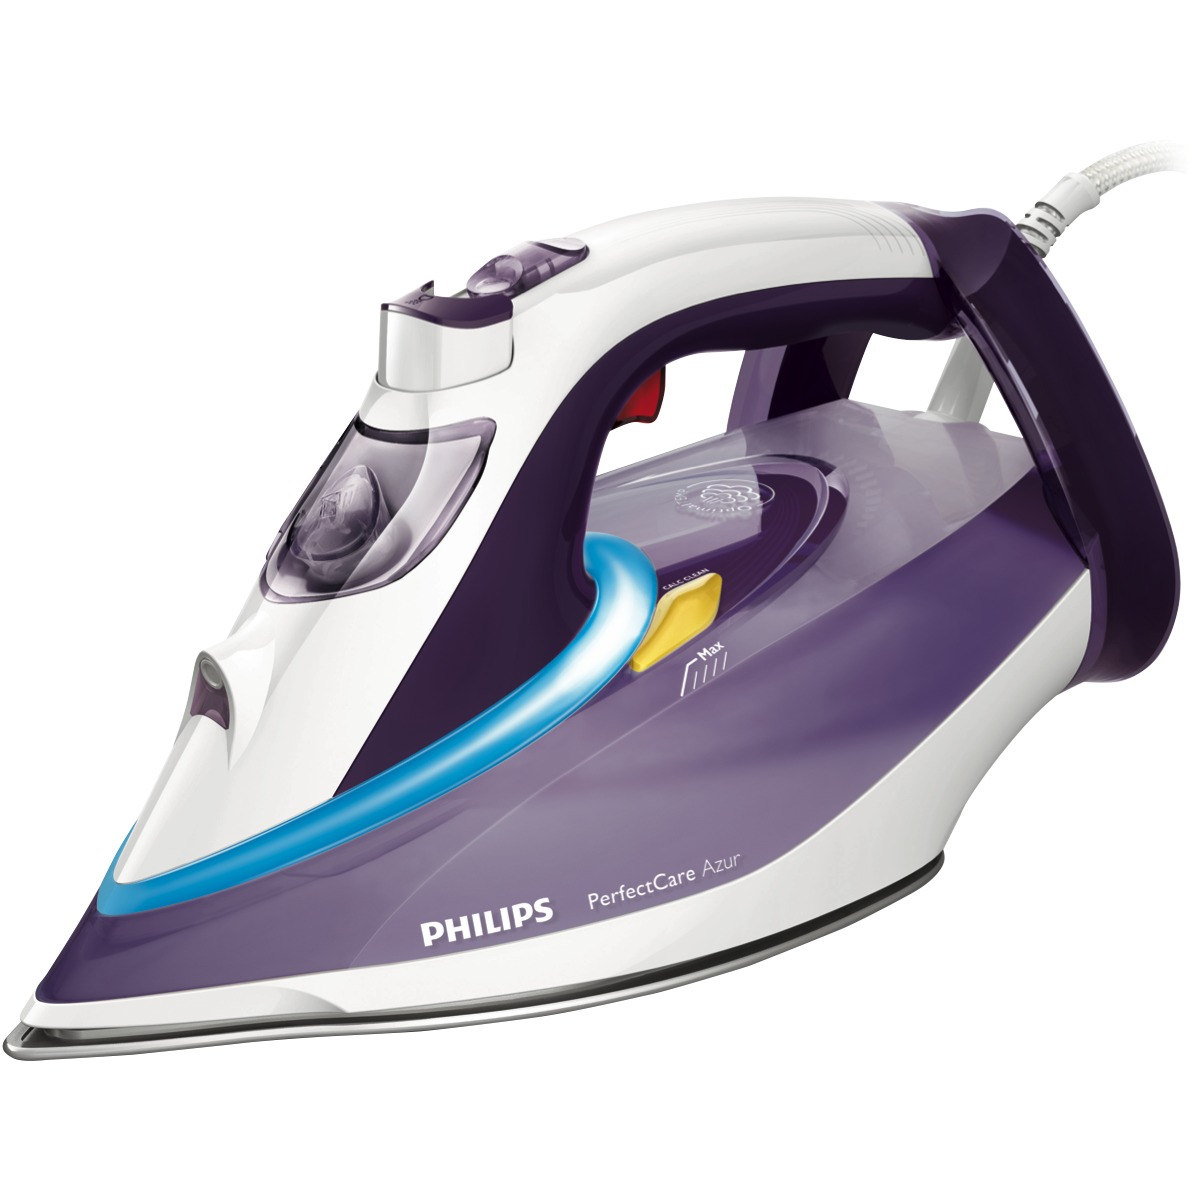 philips perfect care azure steam iron levyousa. Black Bedroom Furniture Sets. Home Design Ideas